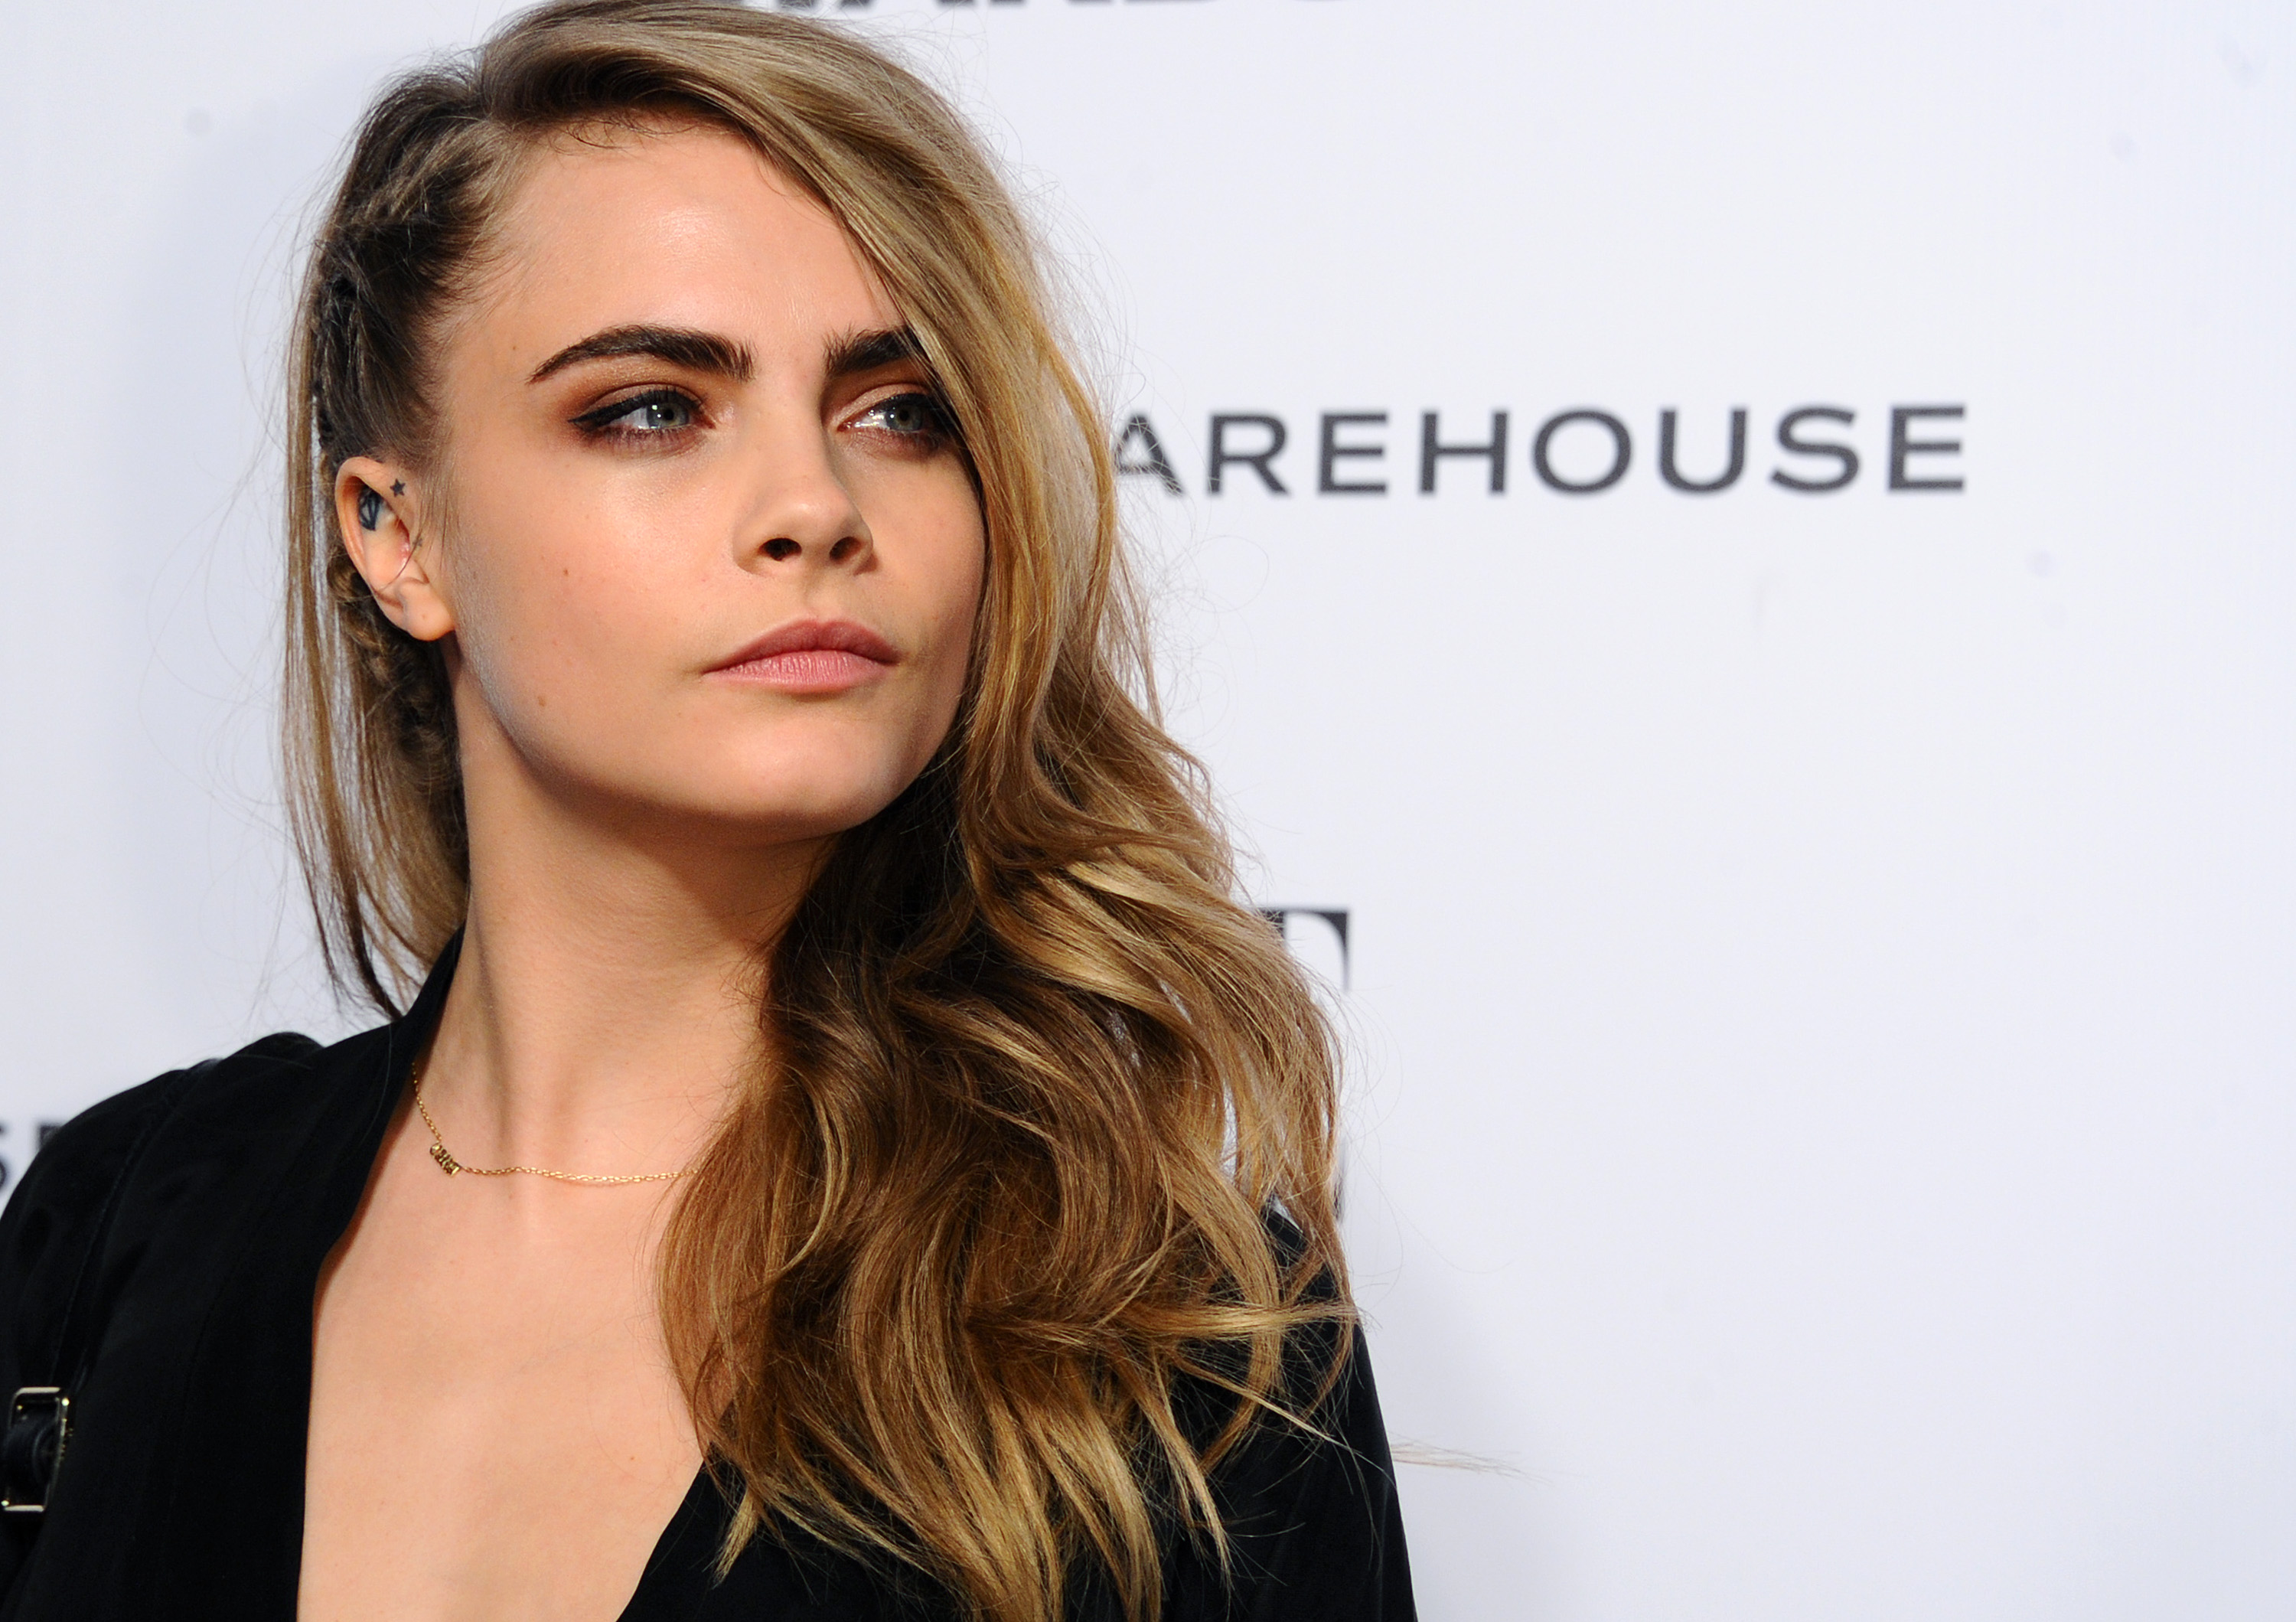 Why Cara Delevingne Decided to Quit Modeling Has a Lot to Do With Feminism